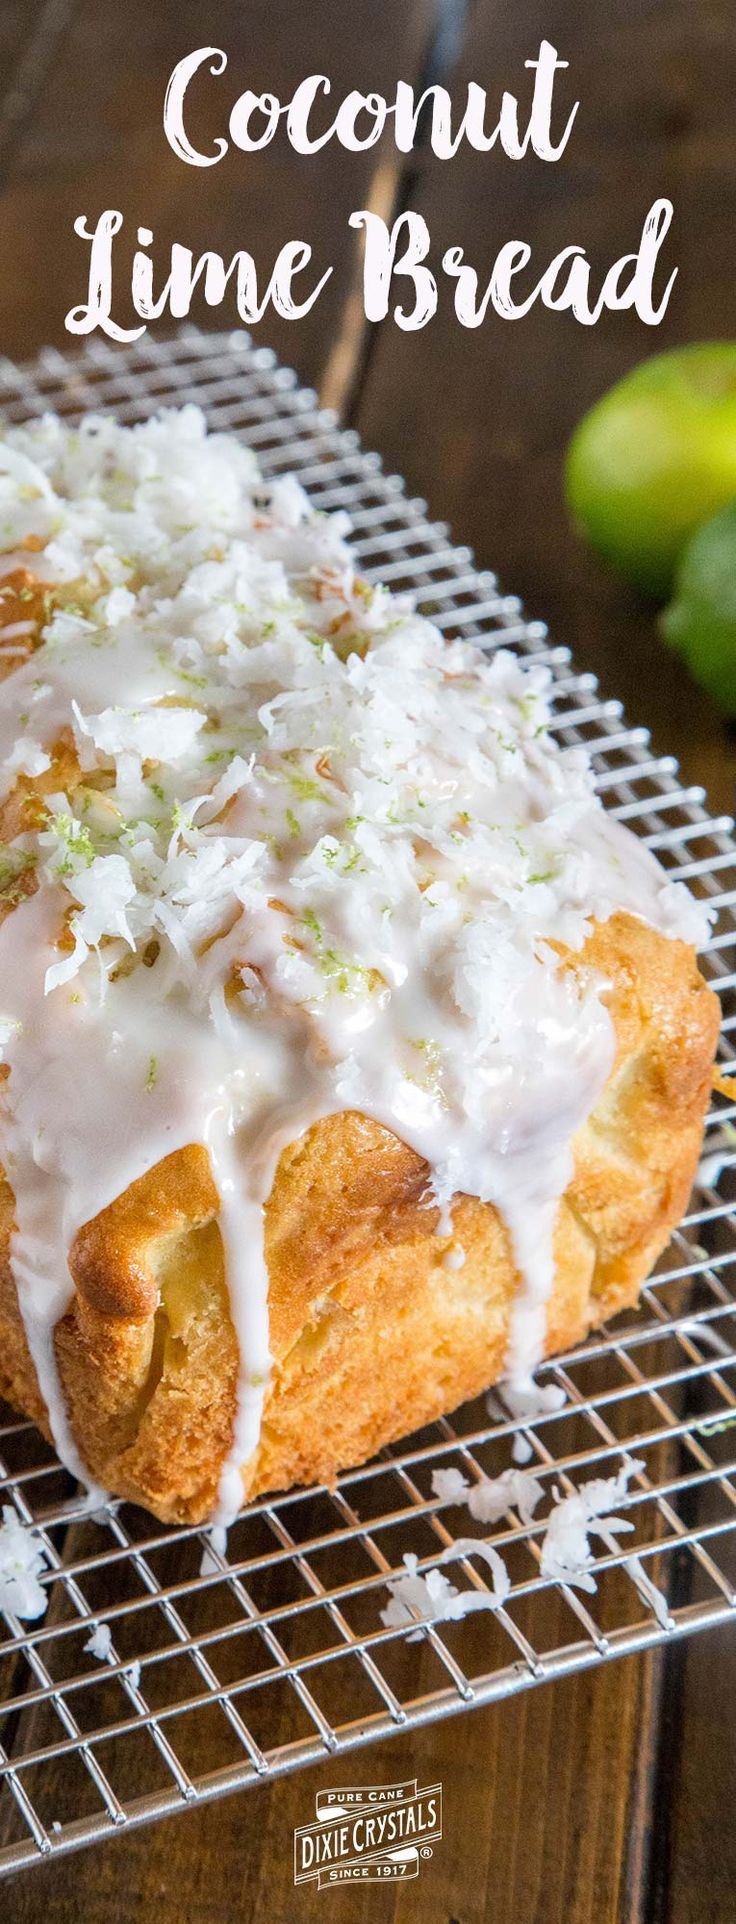 Coconut Lime Bread-Transport yourself to the tropics any time of year with this soft and tender Coconut Lime Bread. Sweetened coconut flakes and fresh lime zest are mixed throughout both the bread and the glaze. There's a little slice of paradise in every bite of this sweet treat. Serve for dessert or brunch. It makes a yummy treat mid-morning or afternoon for a snack with tea or coffee as well.